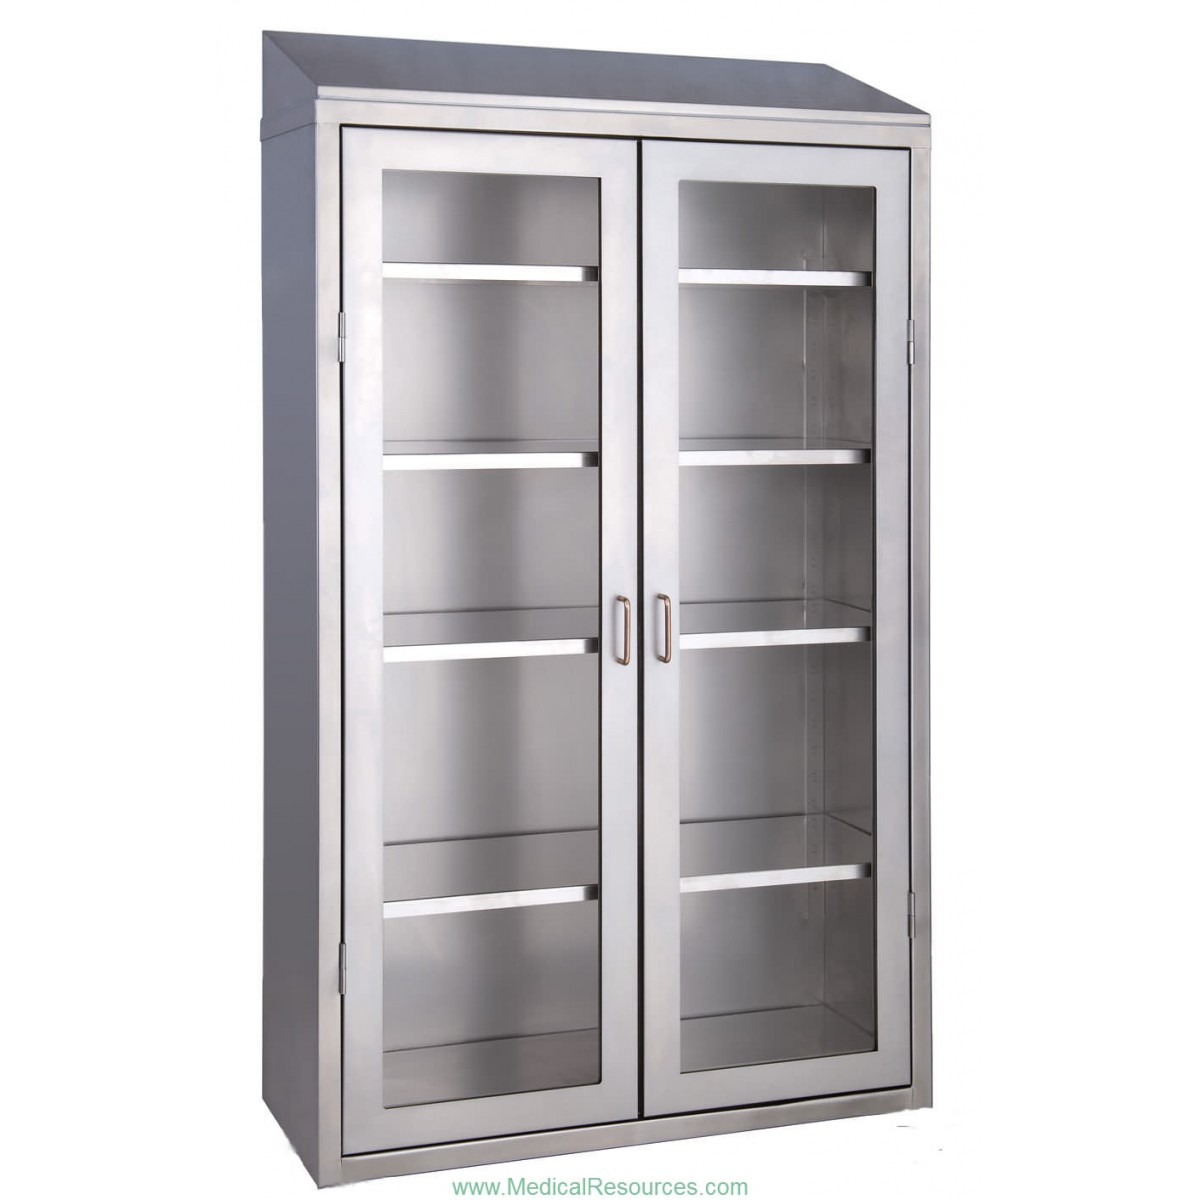 Medwurx Stainless Steel Stand Alone Instrument Supply Cabinets With Glass Doors